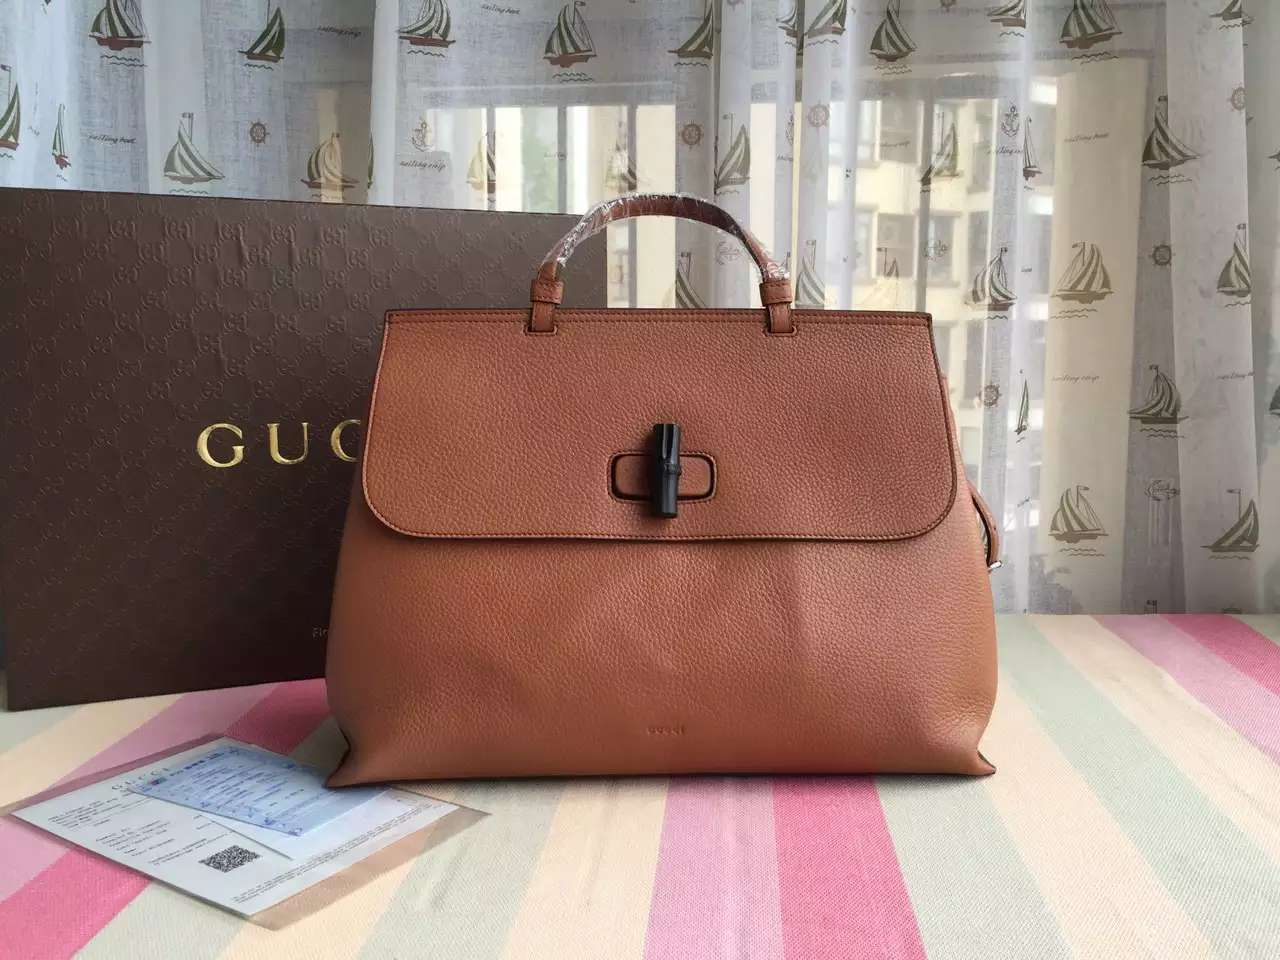 gucci Bag, ID : 21673(FORSALE:a@yybags.com), gucci womens wallet, gucci blue handbags, gucci backpack store, gucci jansport laptop backpack, gucci purses online, buy gucci bags online, gucci wallet cost, gucci video, gucci designer womens wallets, gucci shop handbags, gucci online boutique, gucci usa sale, gucci com, gucci products #gucciBag #gucci #gucci #online #boutique